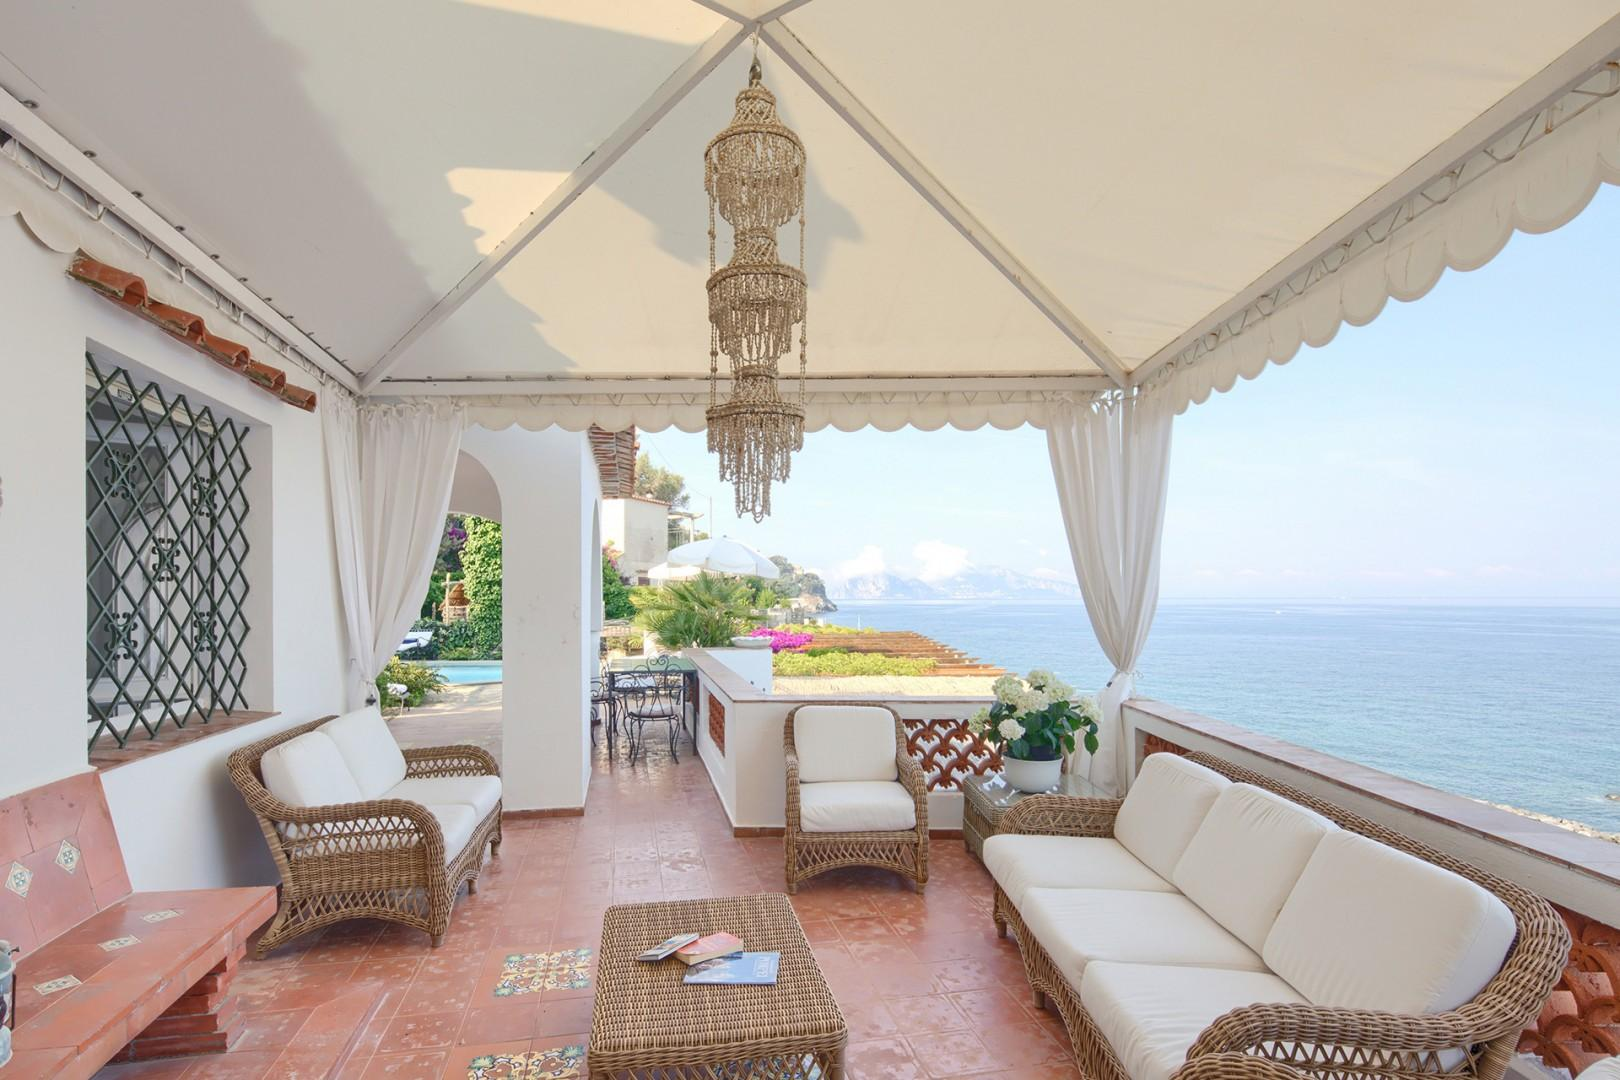 The views from Villa Sole are the natural, calming antidote to high blood pressure.